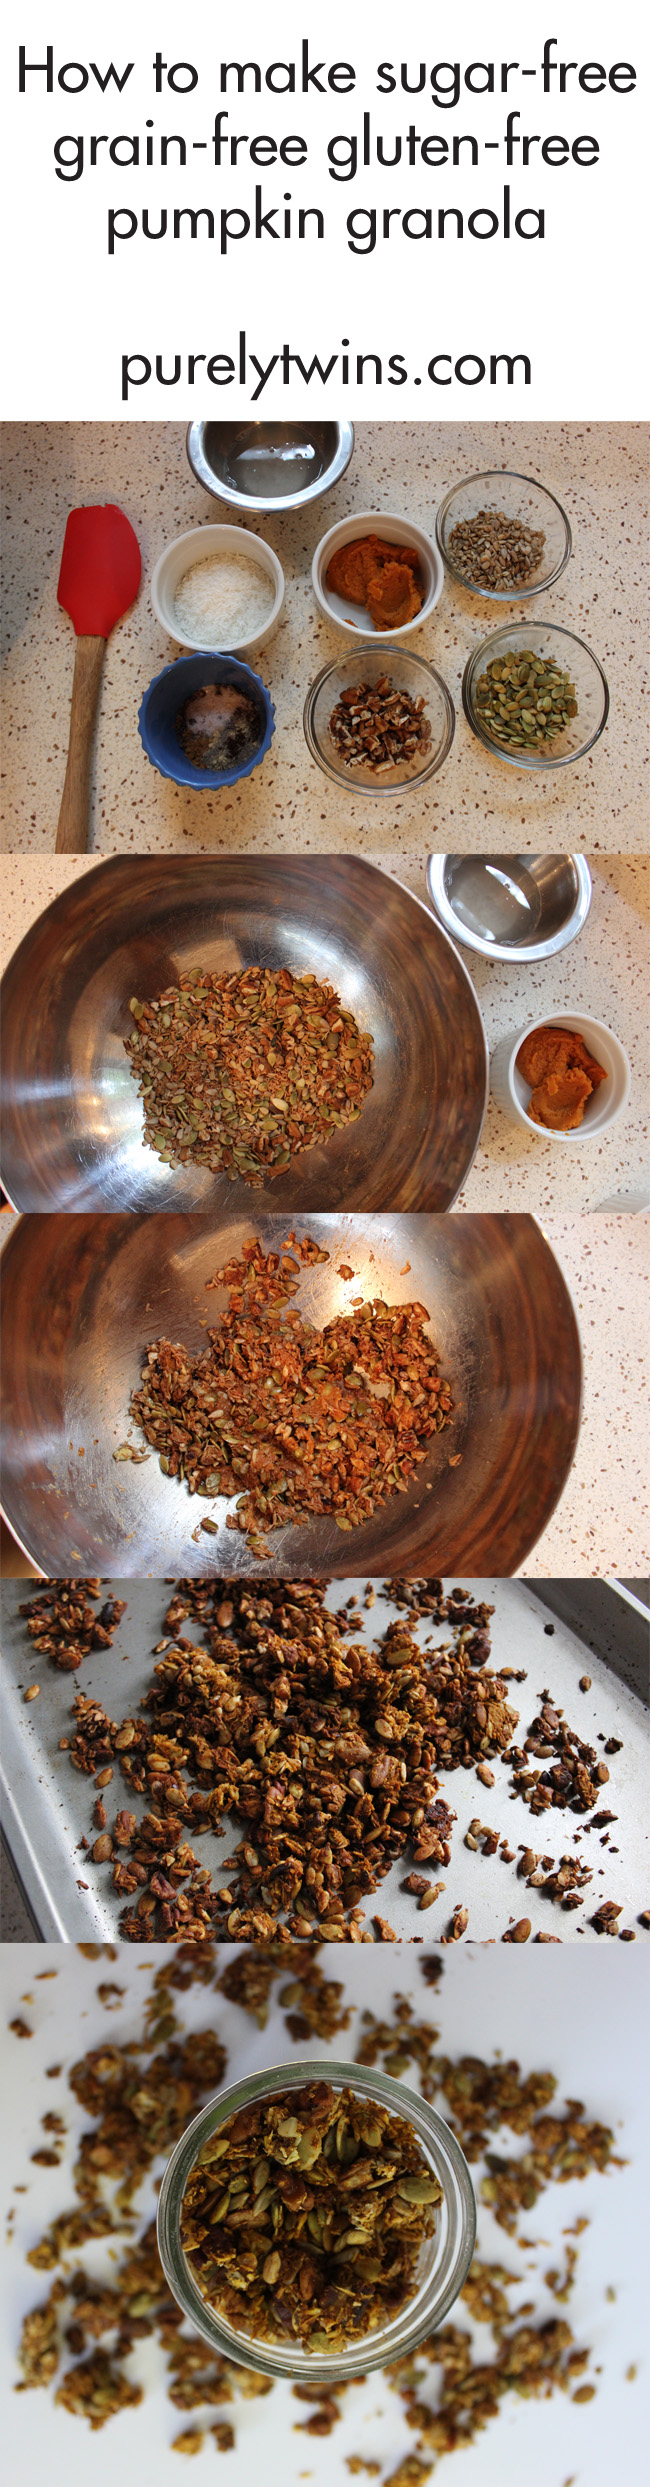 how-to-make-sugar-free-grain-free-pumpkin-granola-purelytwins